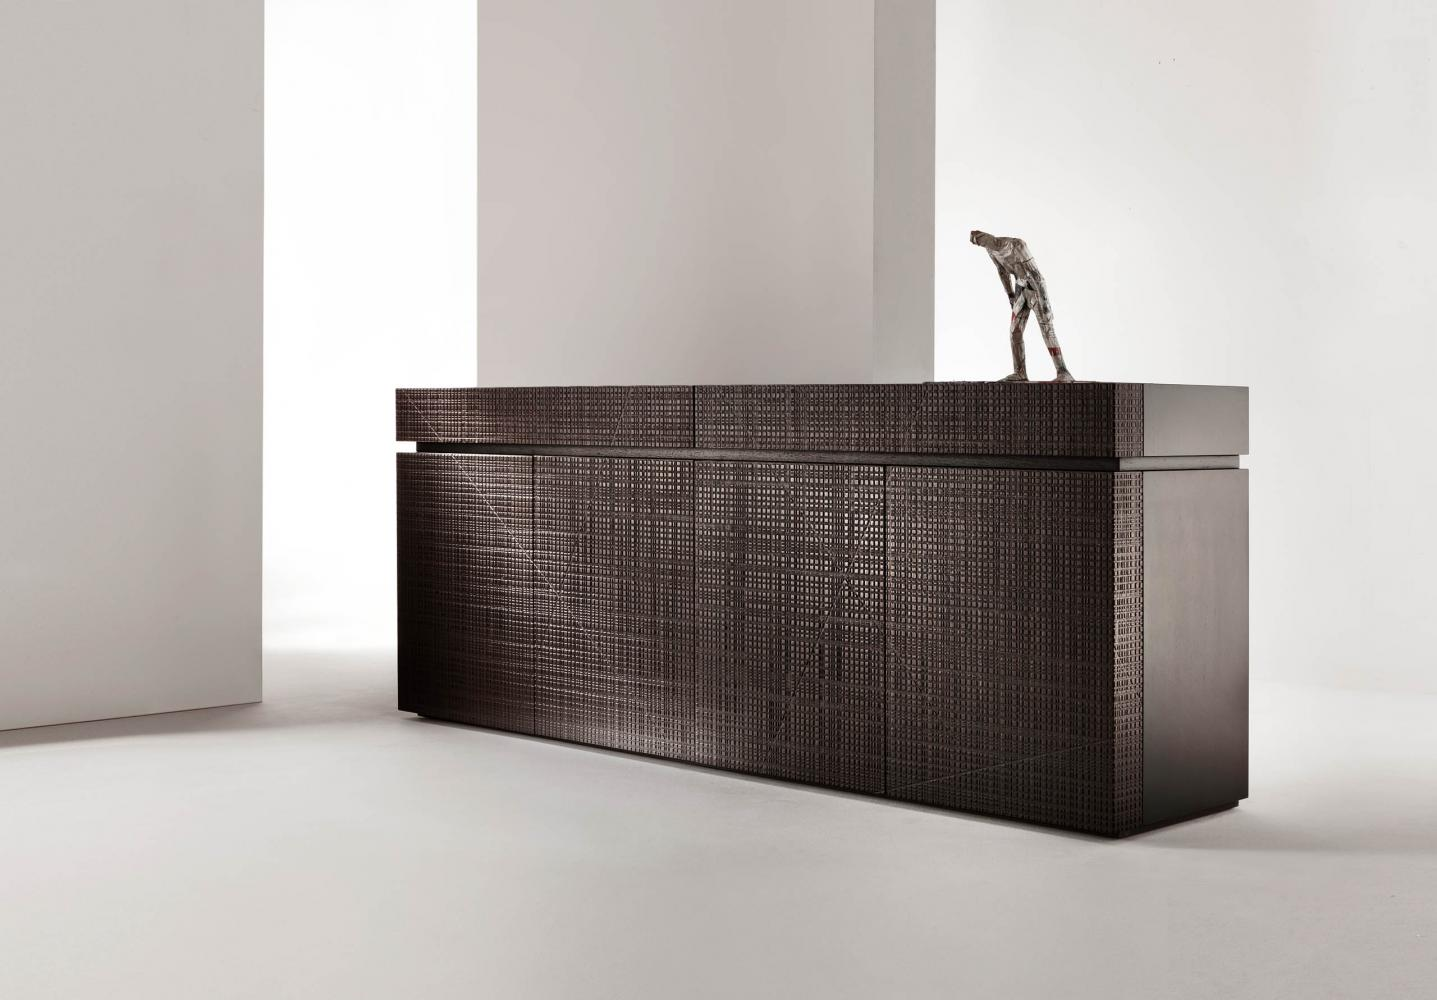 Contemporary luxury sideboard with Maxima textured wood hinged doors and drawers